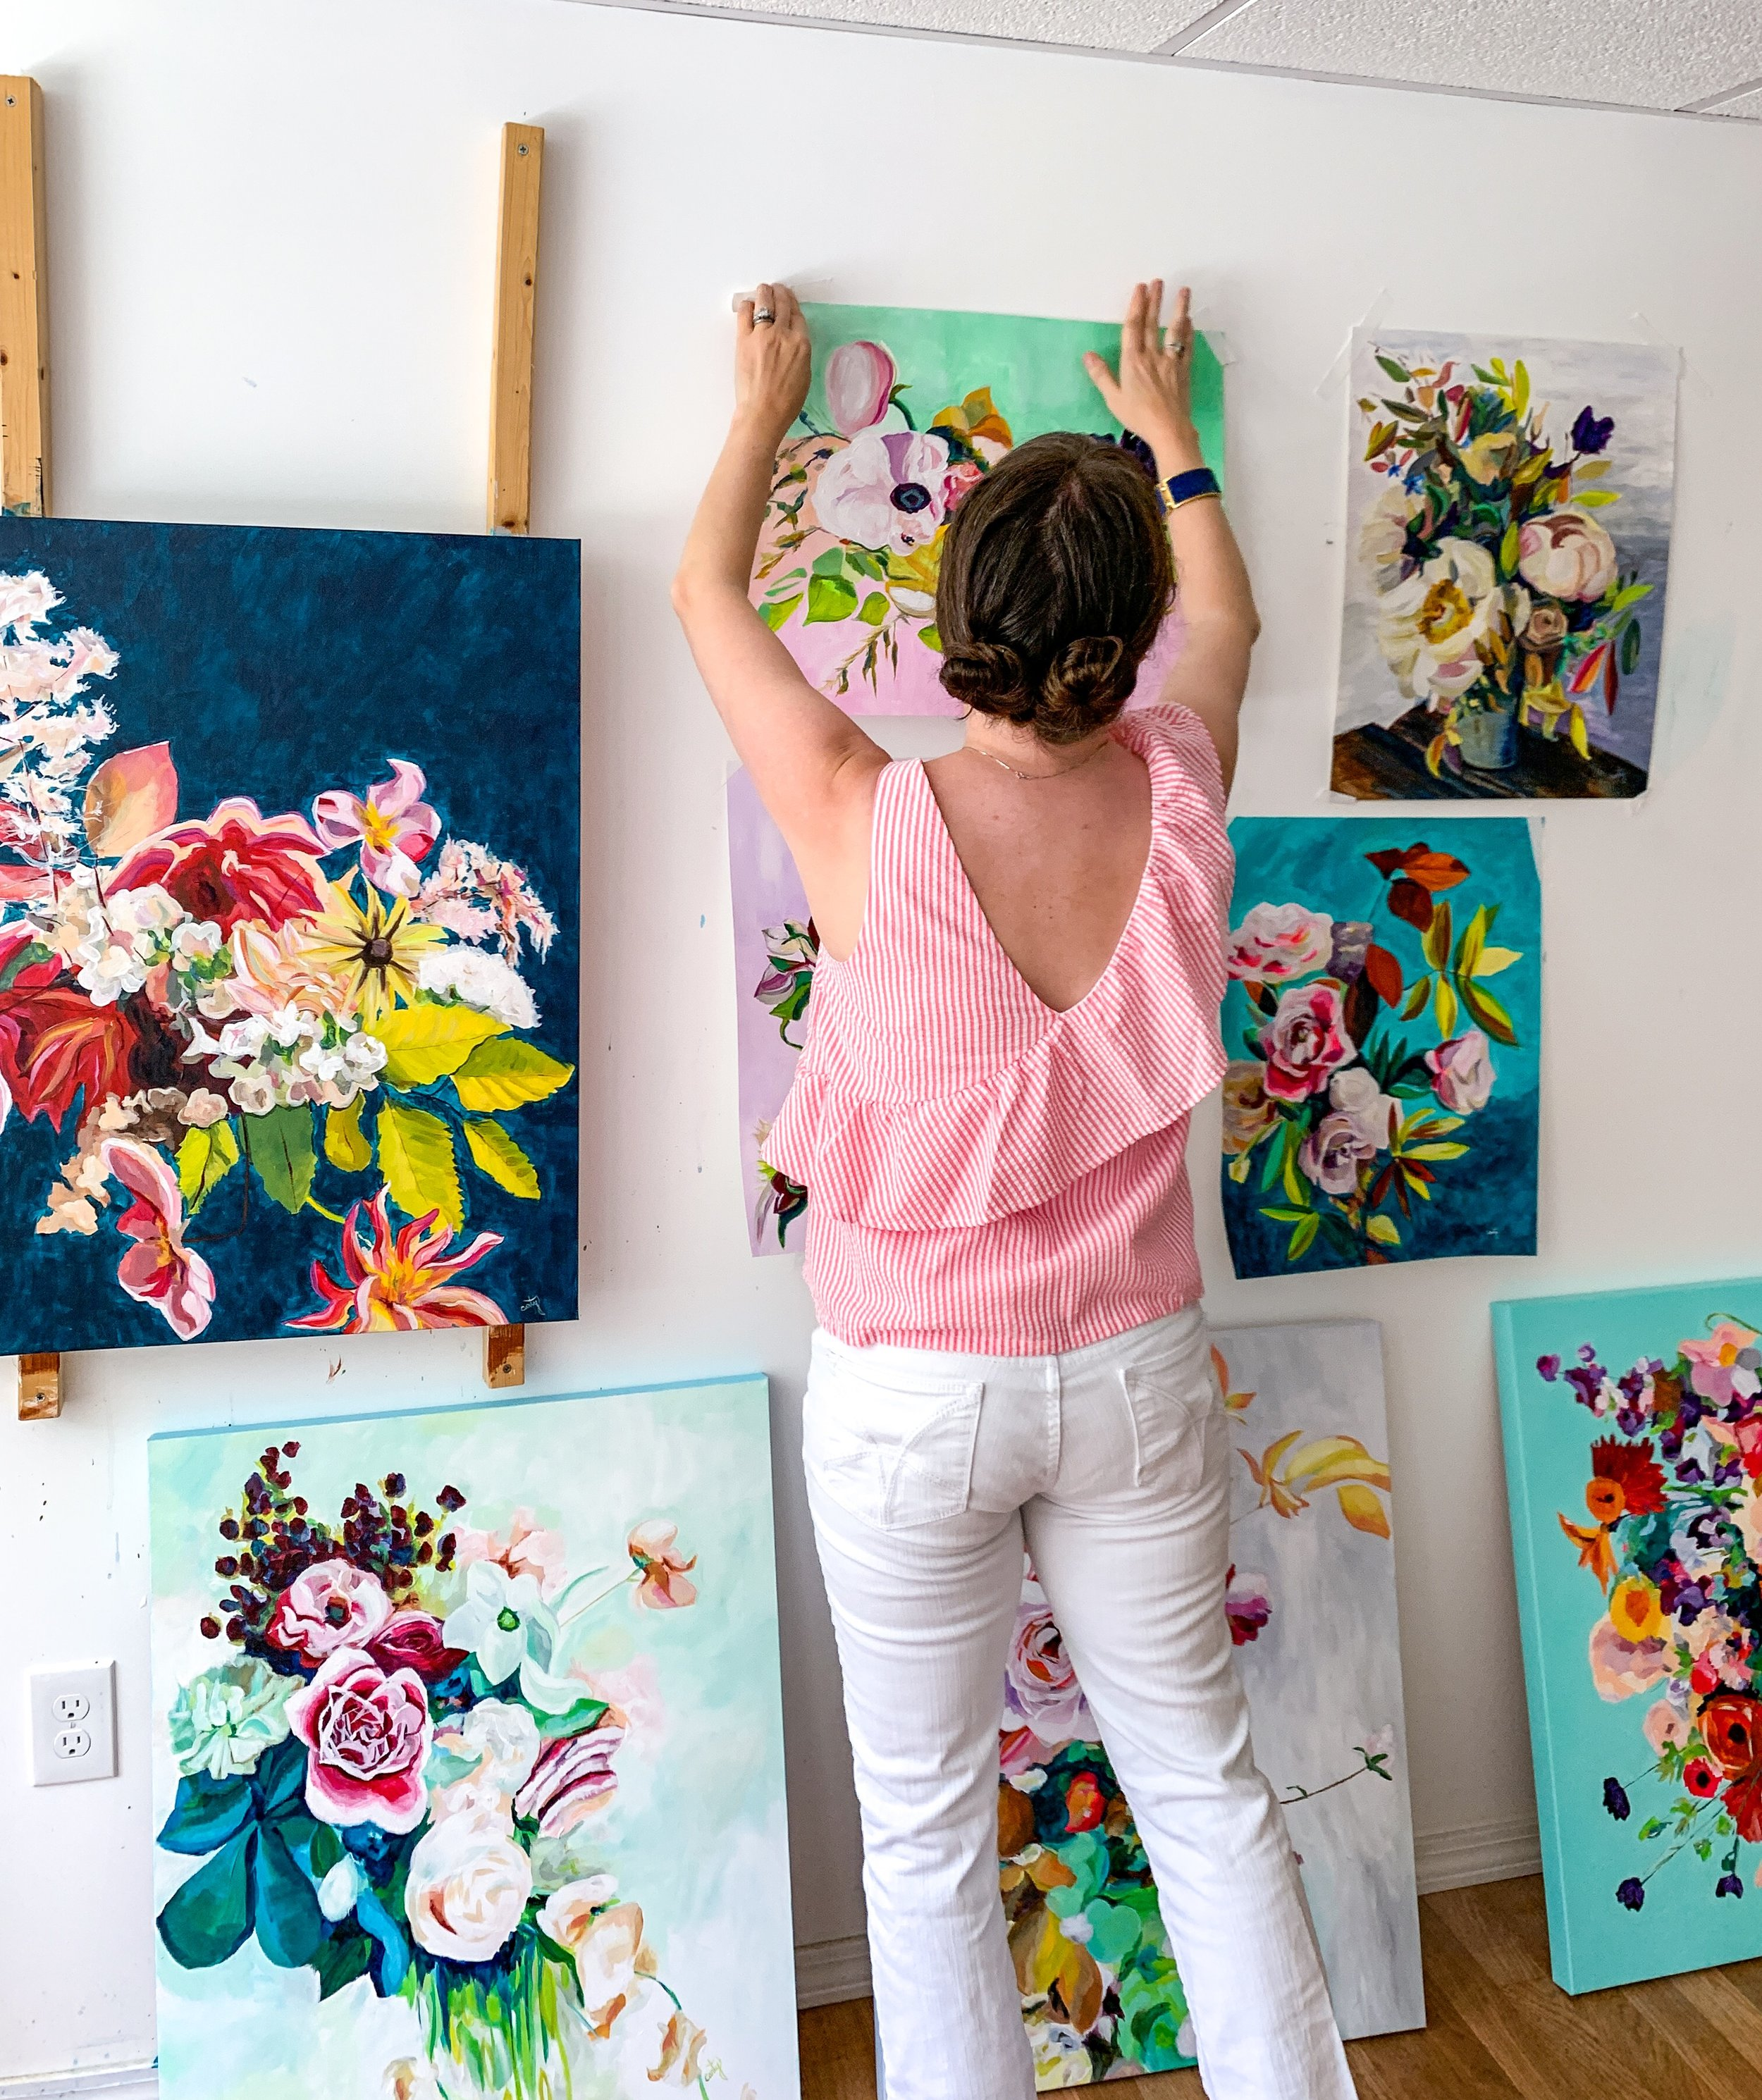 floral paintings by Megan Carty in the studio